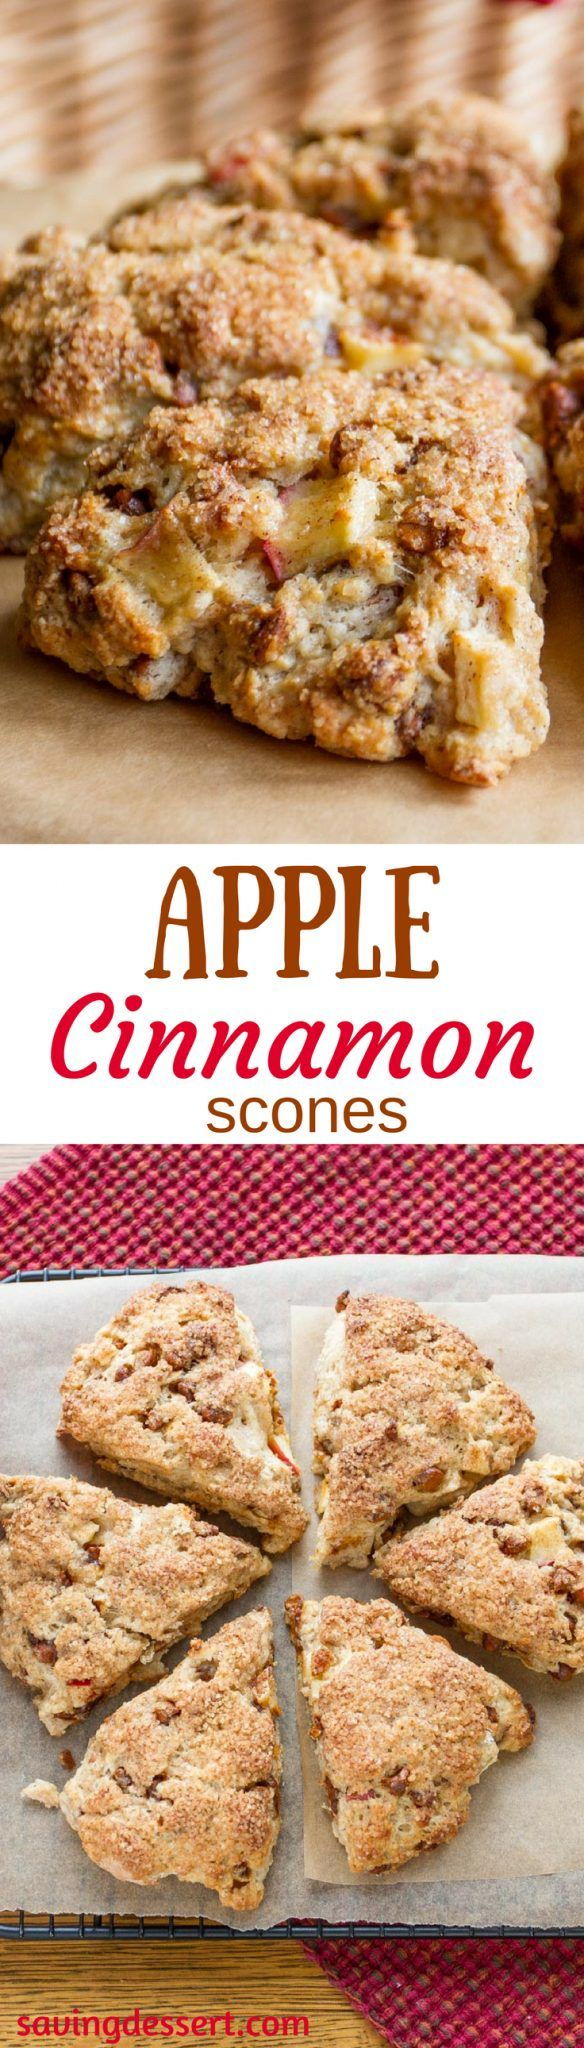 Apple Cinnamon Scones ~light and fluffy with a crispy sweet crust, large chunks of apple and delicious cinnamon chips! savingdessert.com #savingroomfordessert #apple #applescones #scones #breakfast